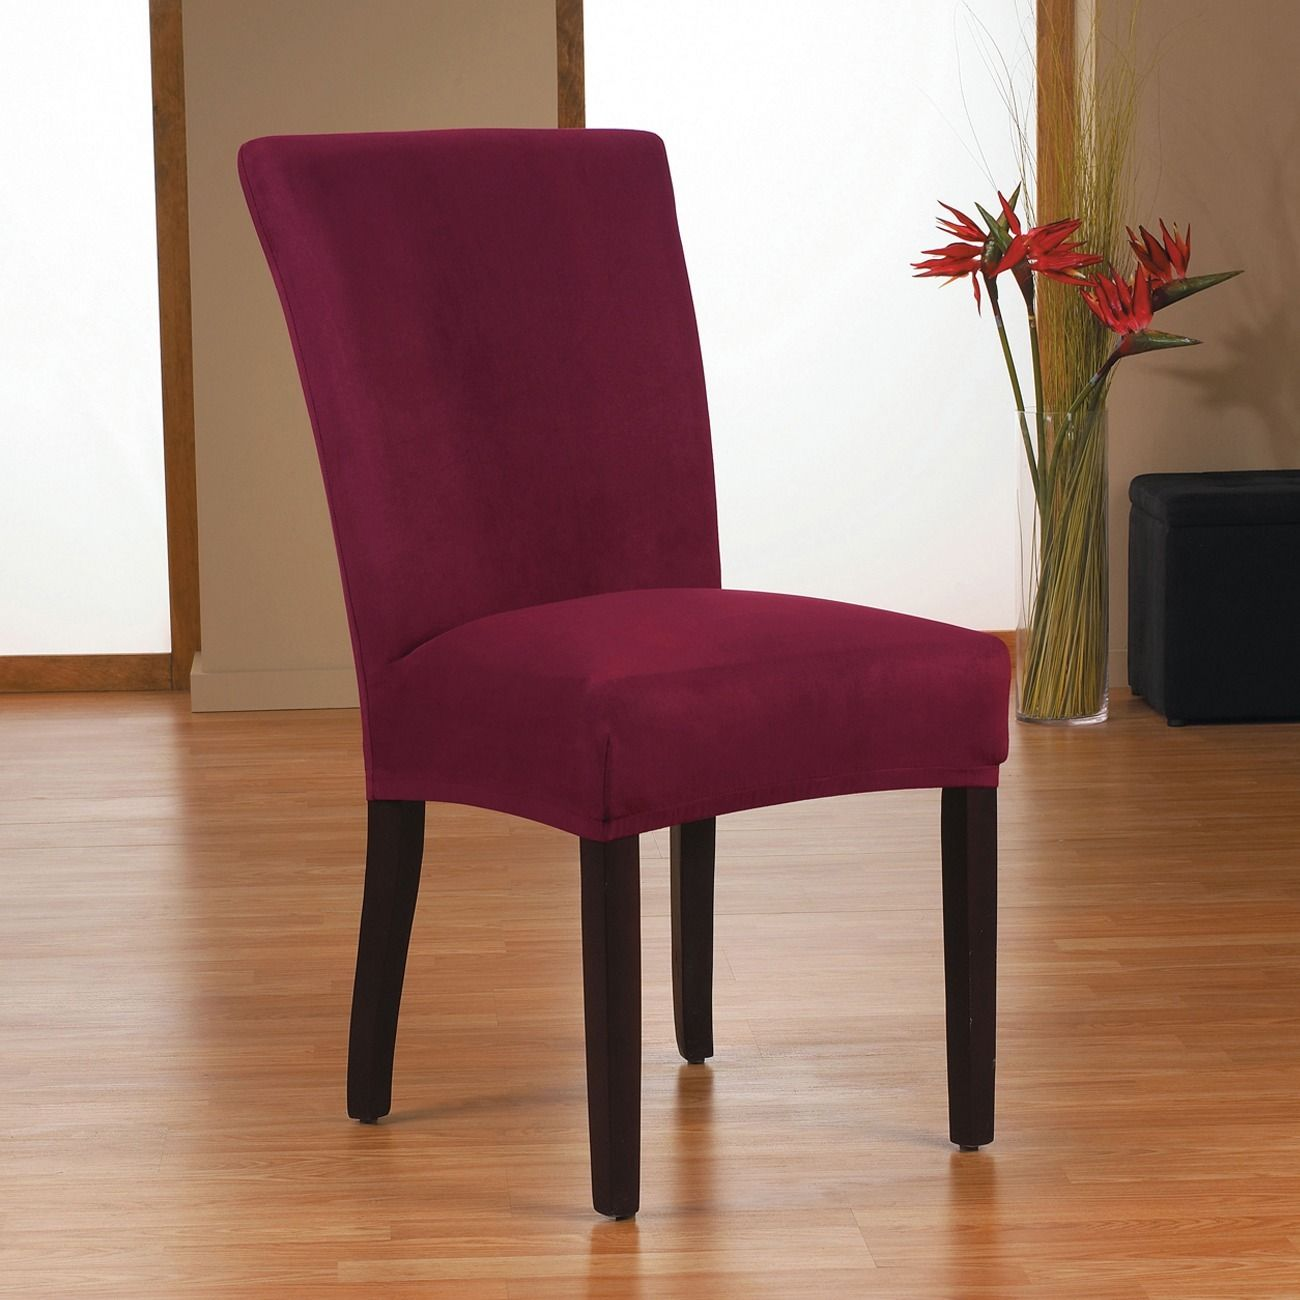 Terrific Quickcover Harlow Stretch Dining Chair Slipcover Maroon Machost Co Dining Chair Design Ideas Machostcouk